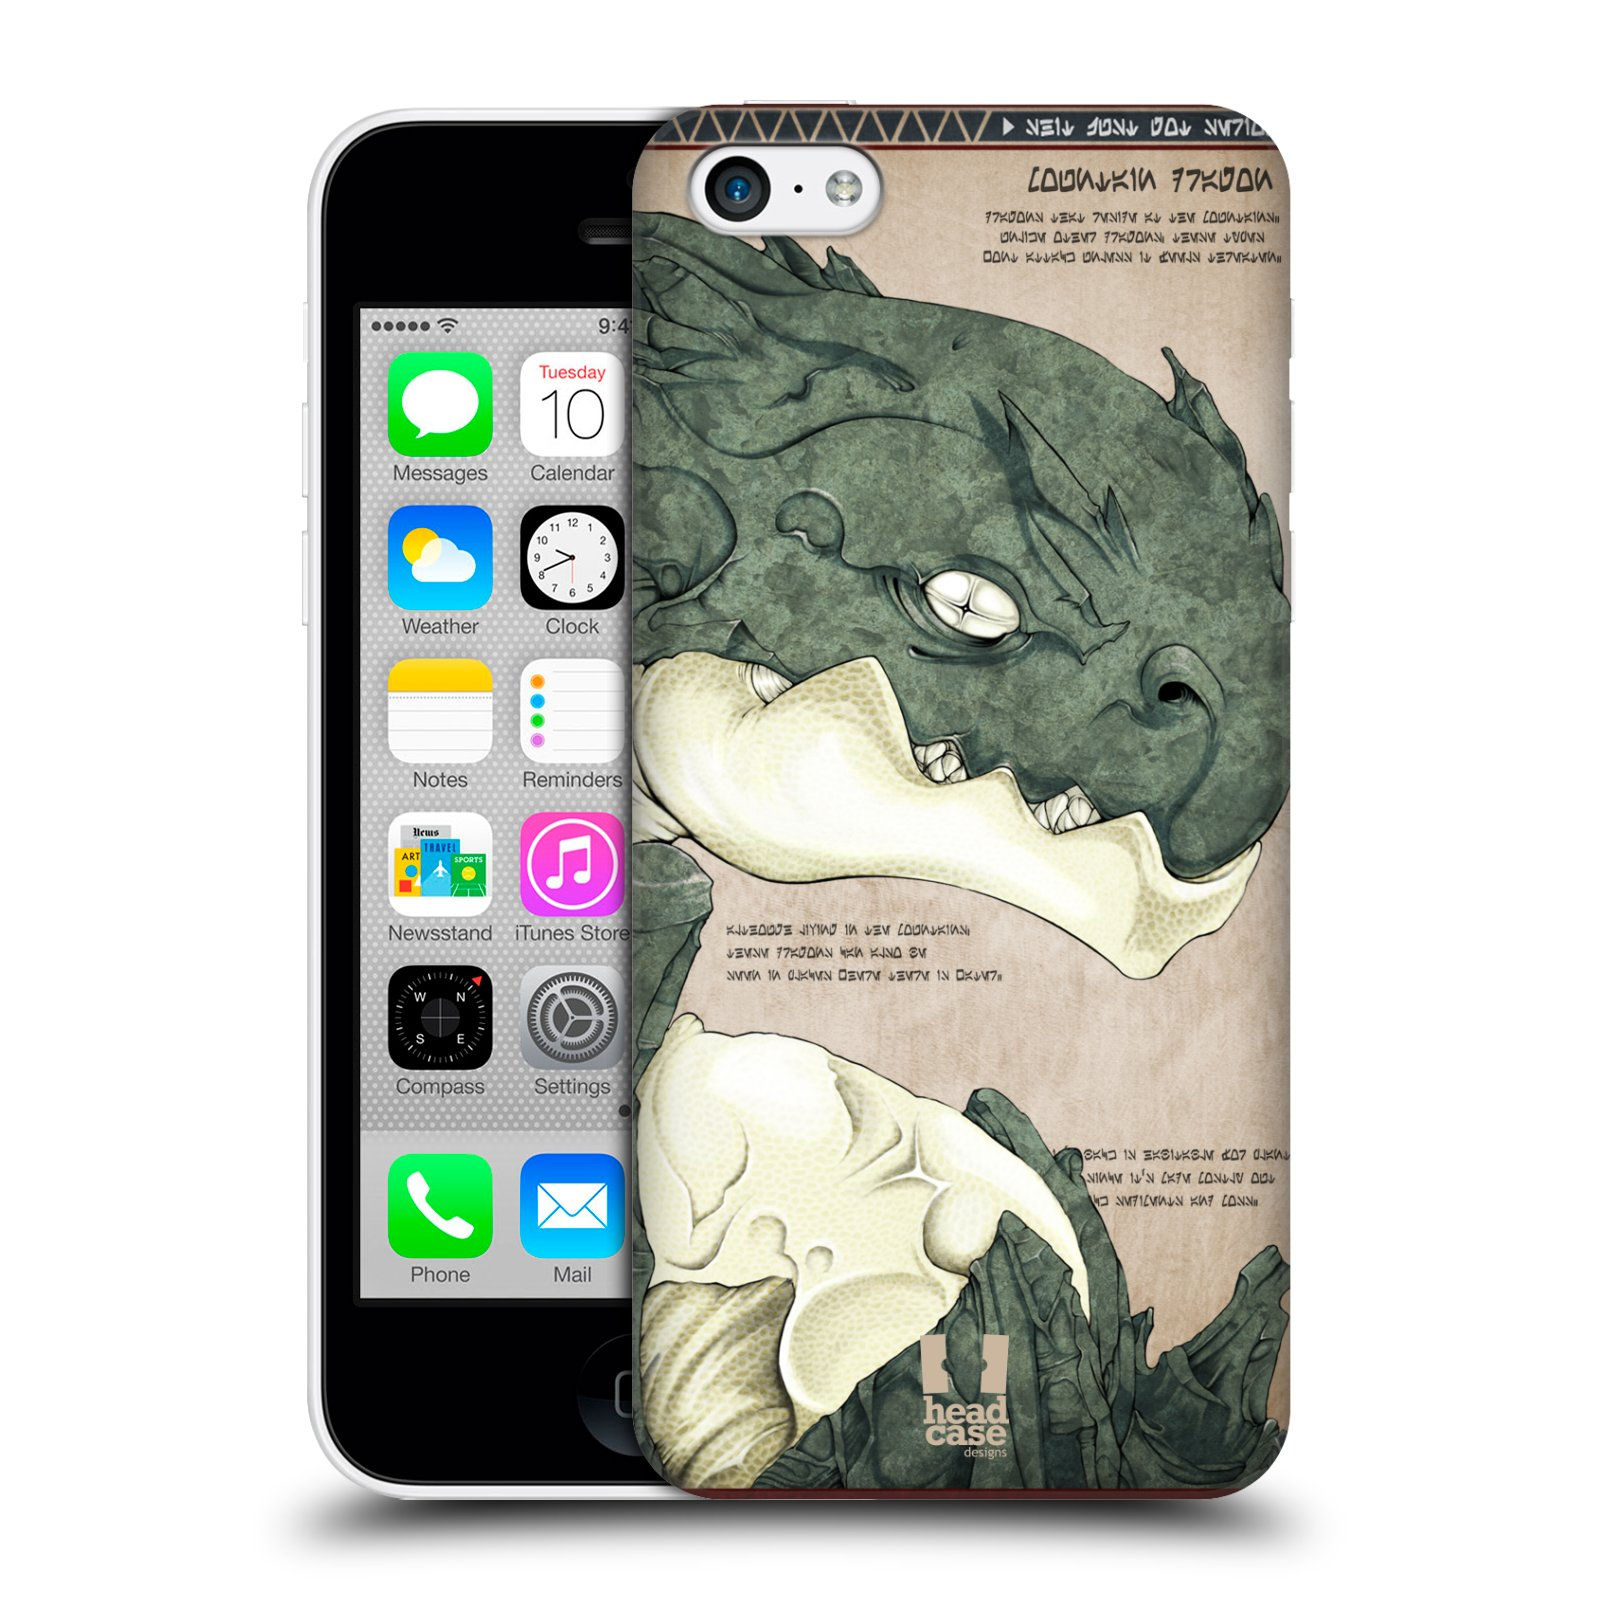 HEAD-CASE-DESIGNS-DRAGON-PROTECTIVE-SNAP-ON-BACK-CASE-COVER-FOR-APPLE-iPHONE-5C